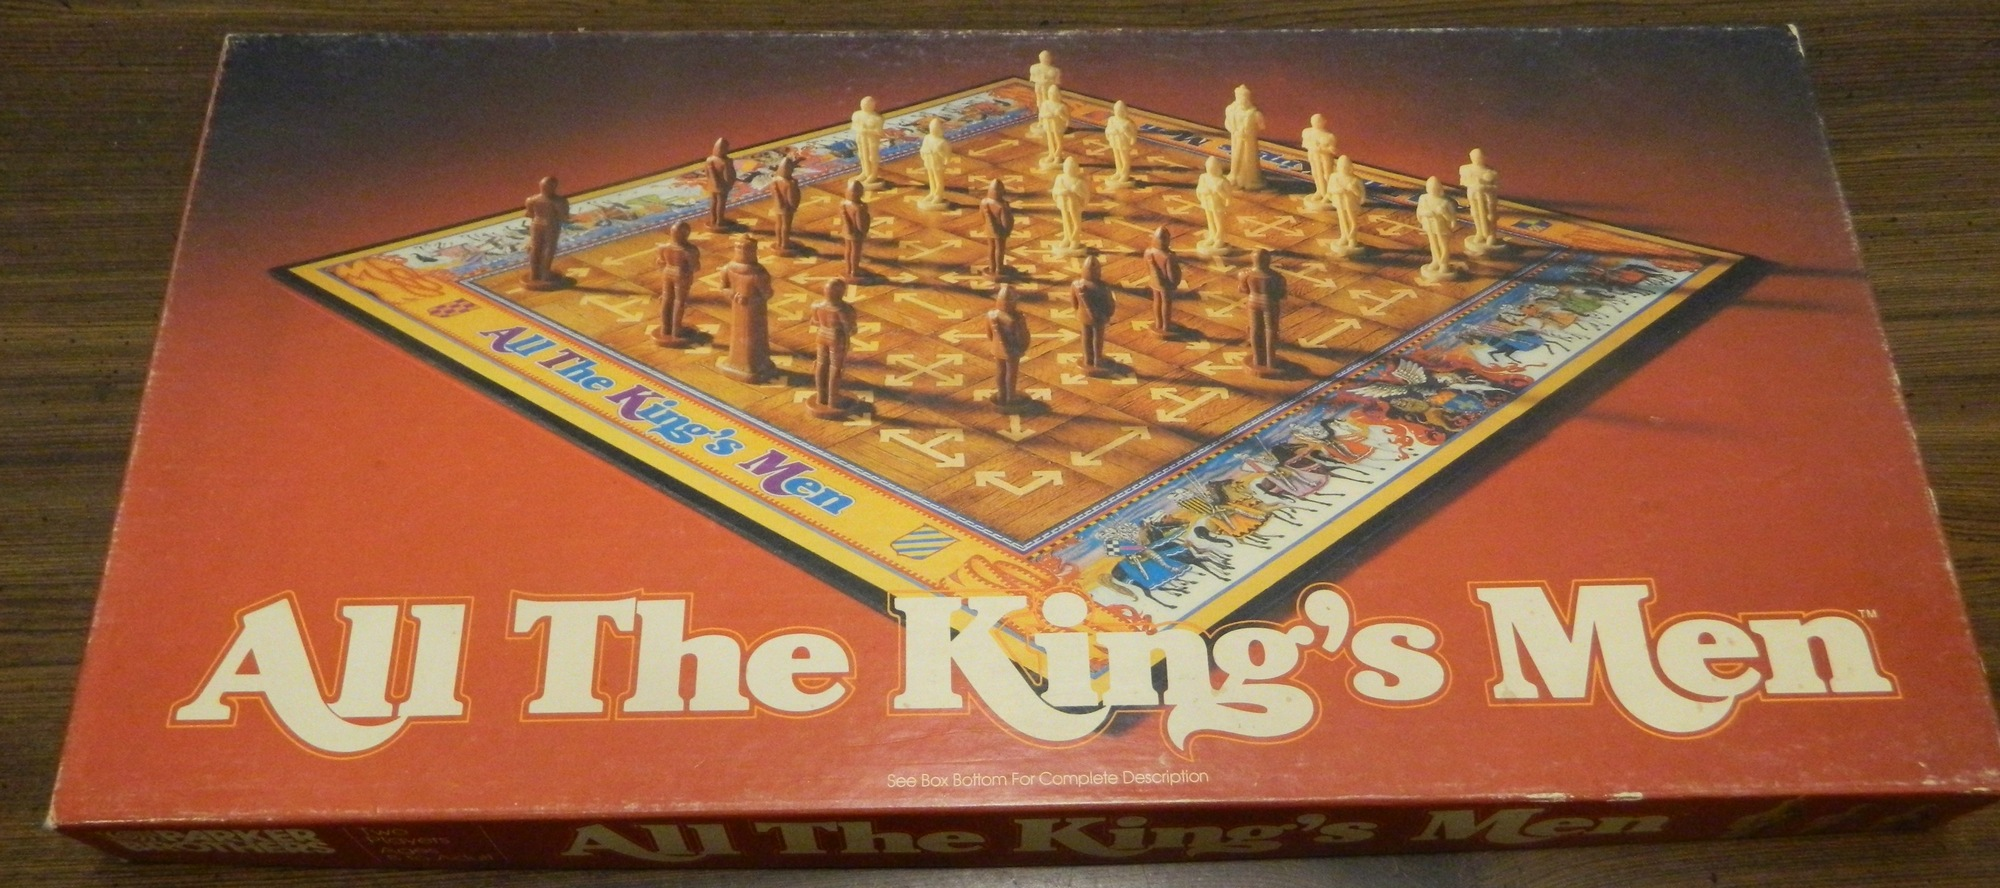 Box for All the King's Men